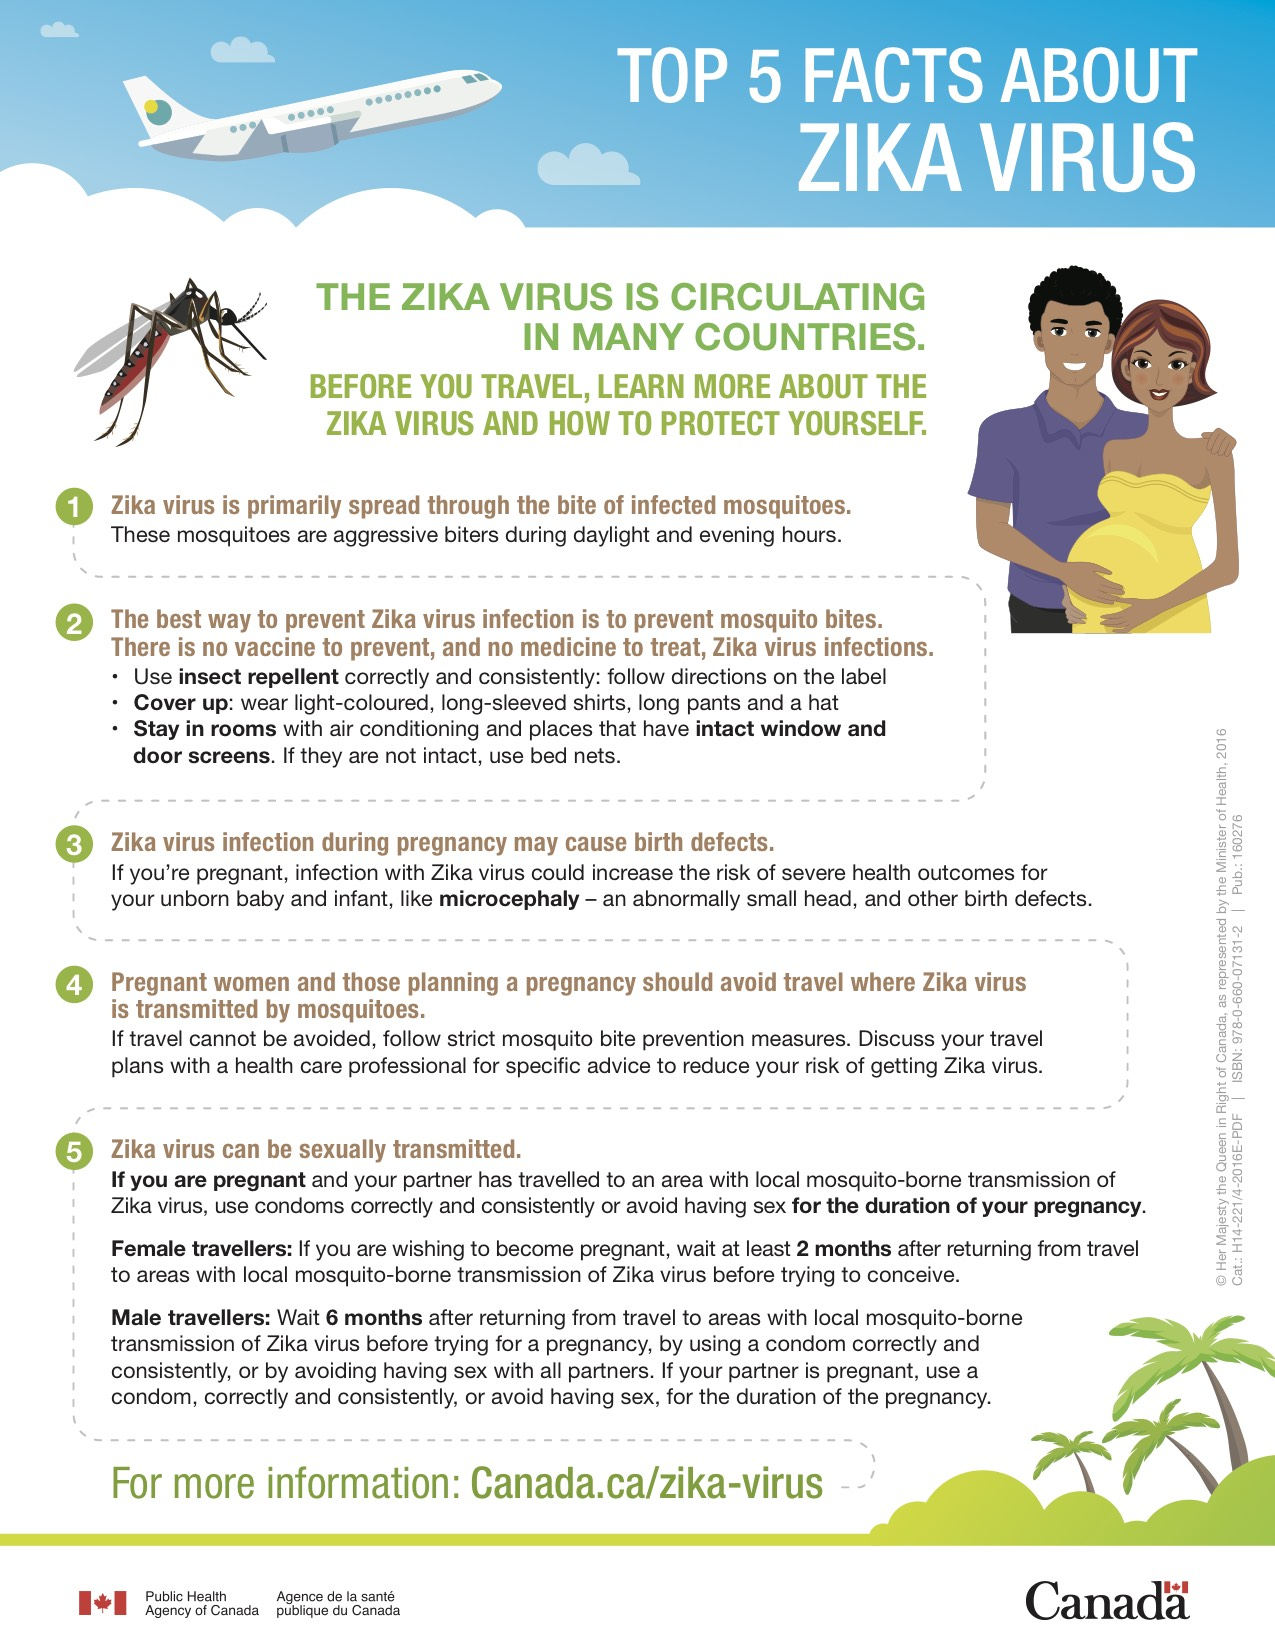 Useful facts about Zika Virus and your warm winter getaway…